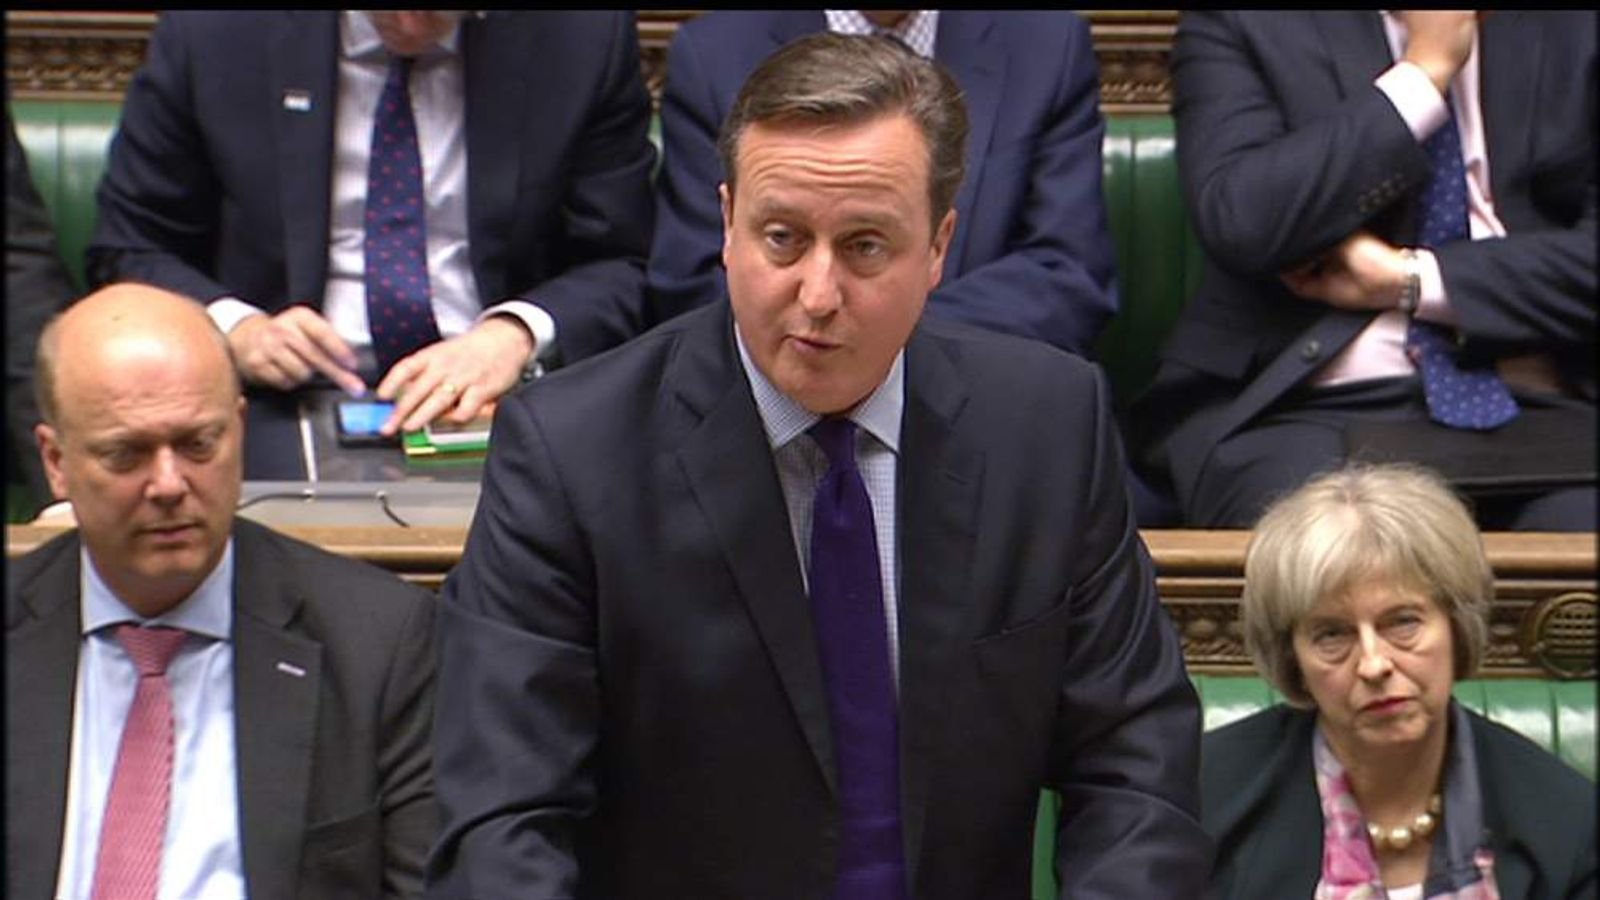 Prime Minister David Cameron updates MPs on EU renegotiations